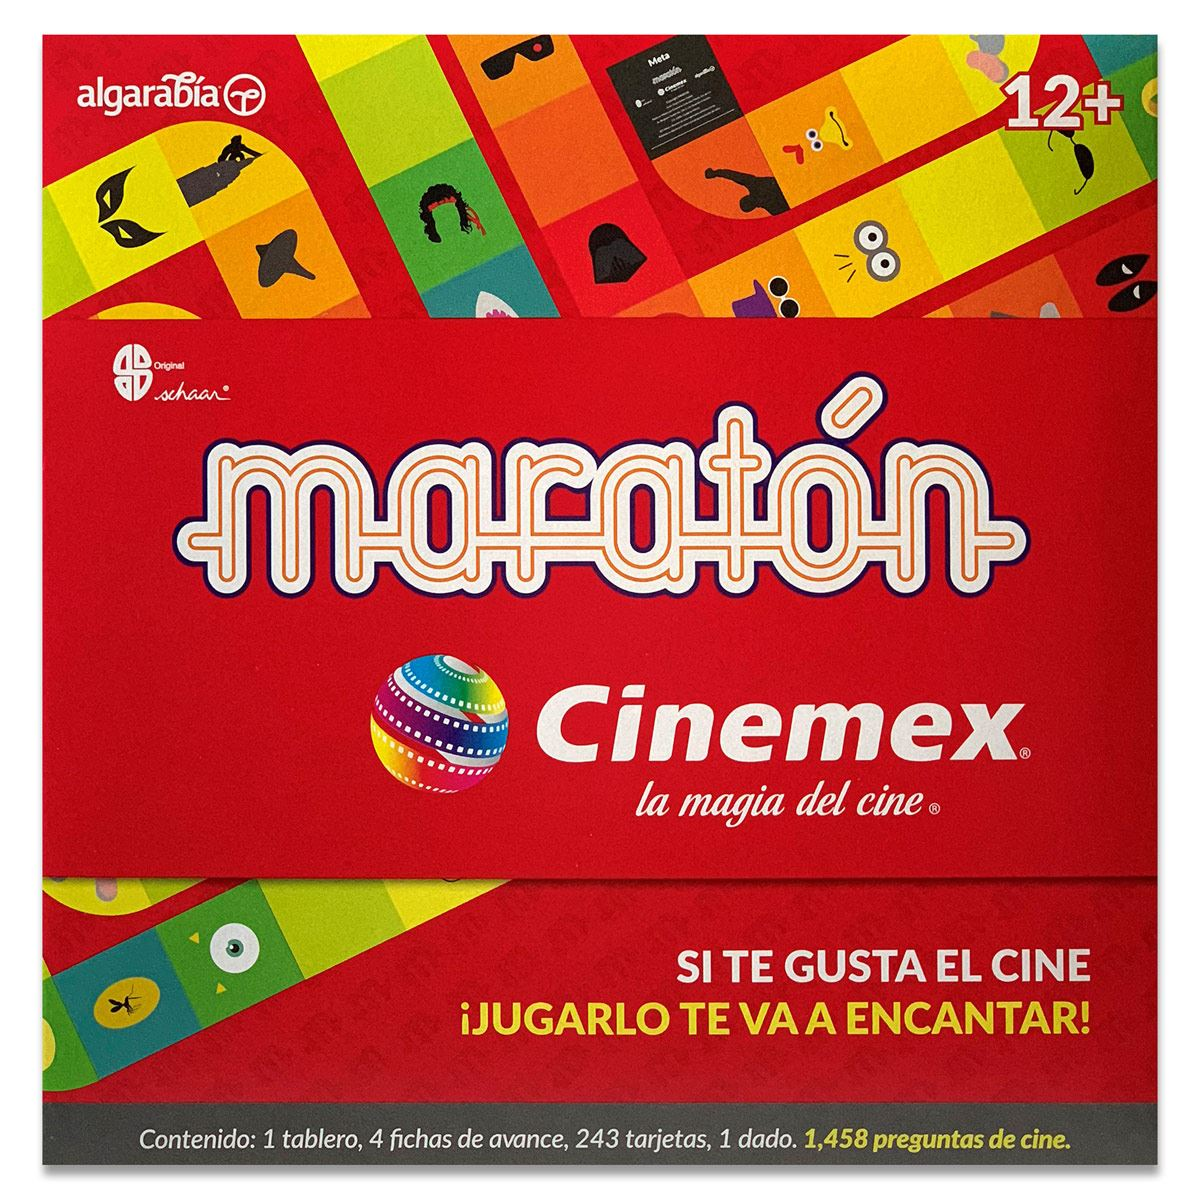 Maratón Cinemex